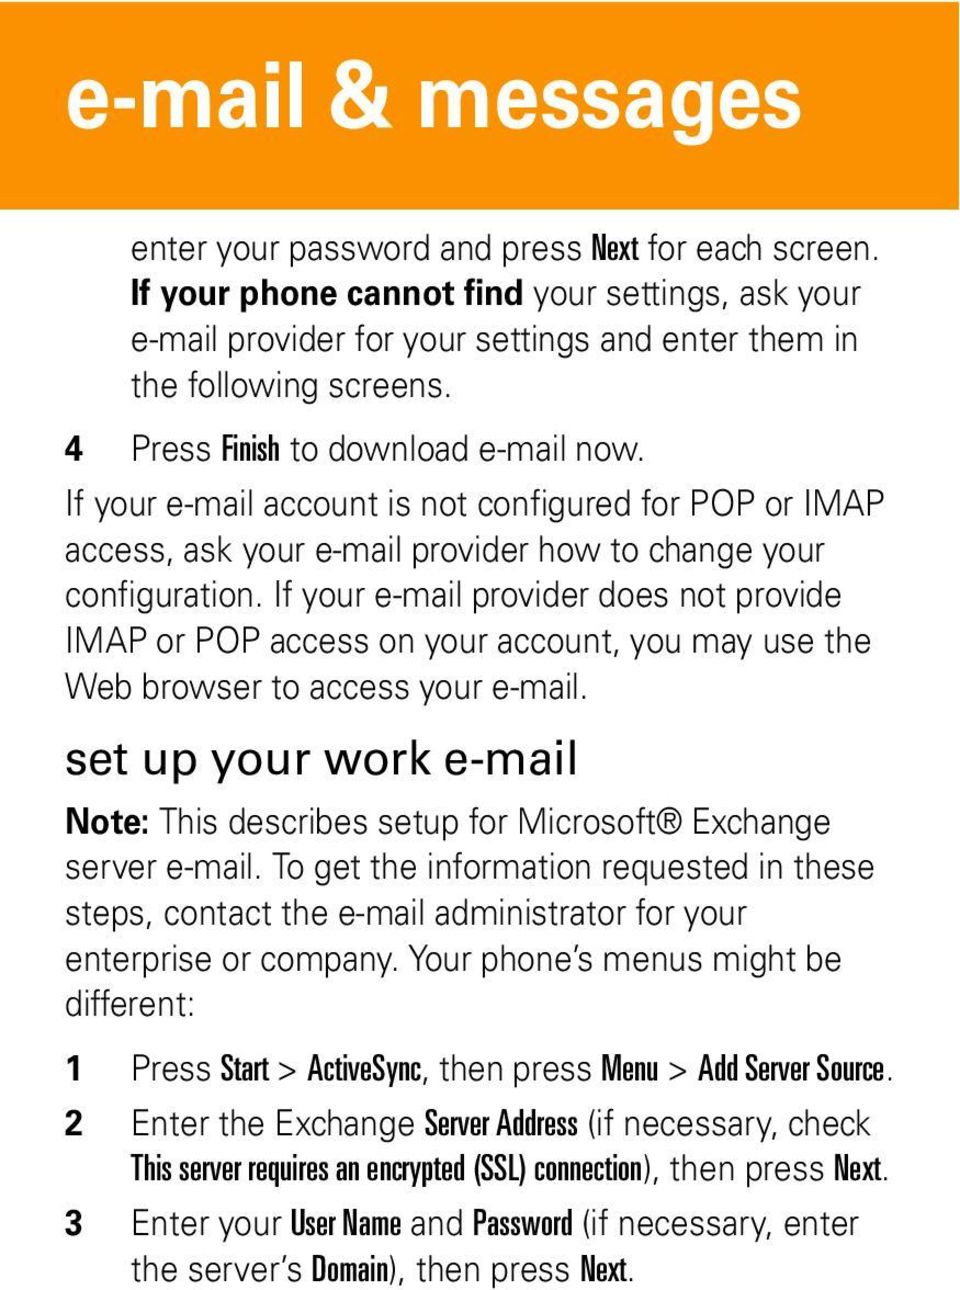 If your e-mail provider does not provide IMAP or POP access on your account, you may use the Web browser to access your e-mail.